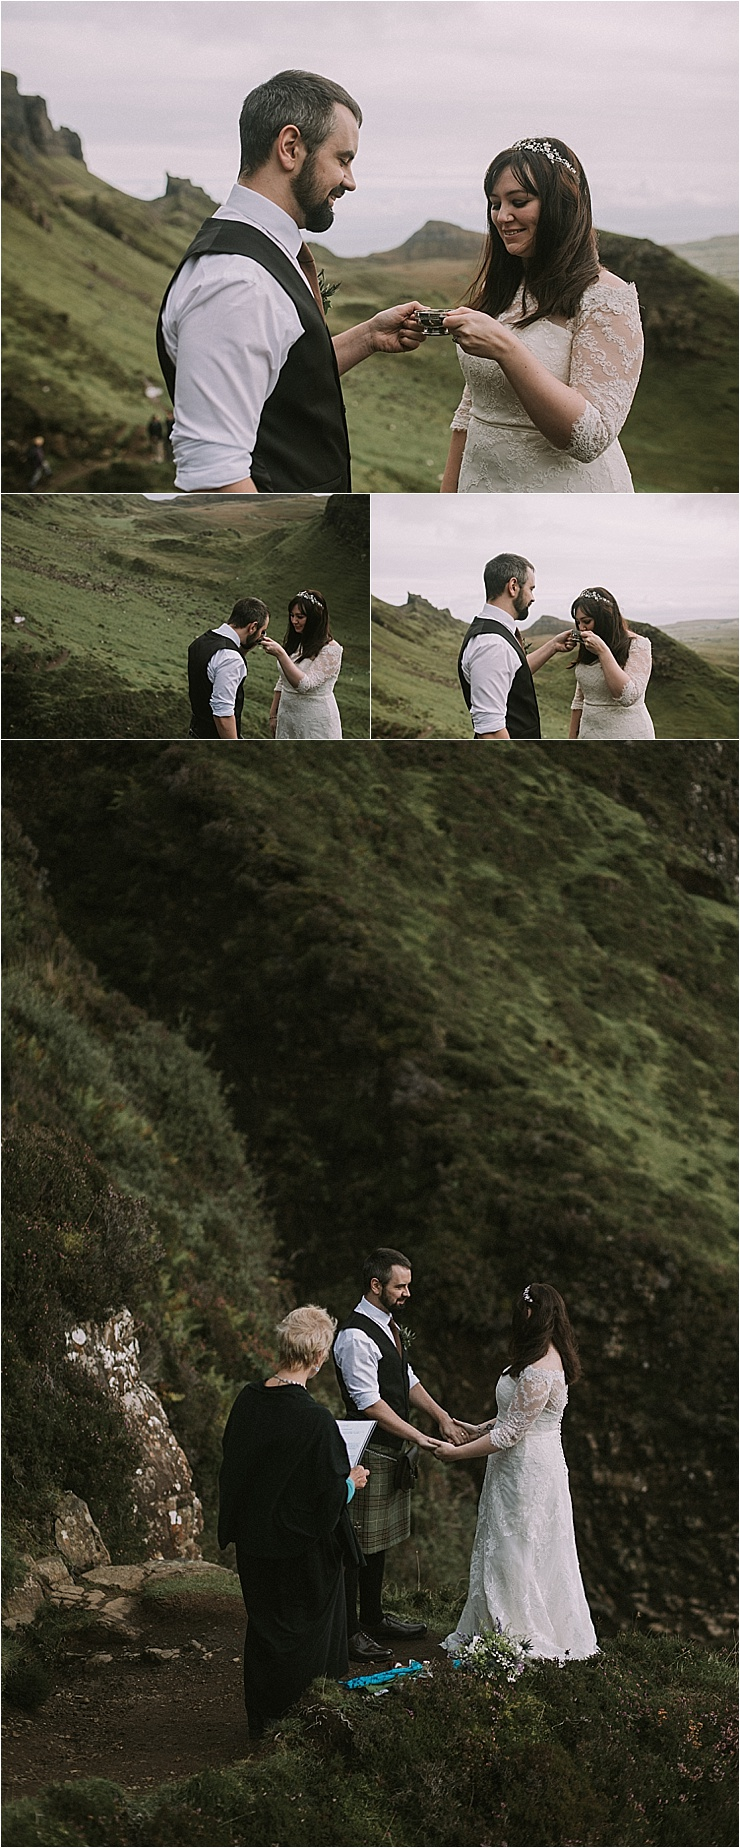 A celebratory toast for their Isle of Skye elopement by Maureen Du Preez